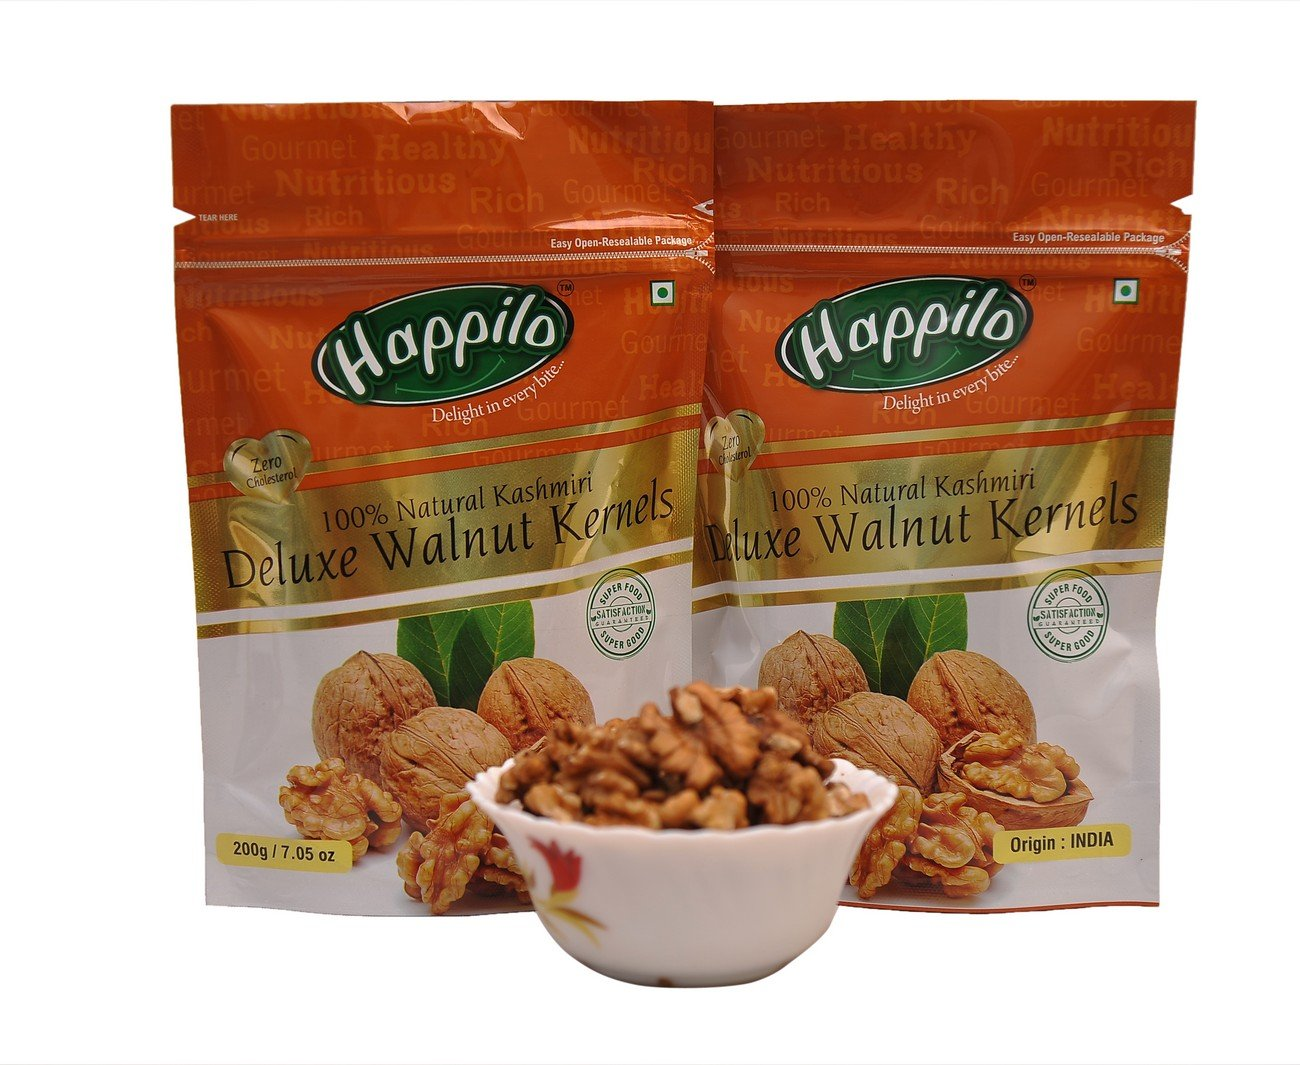 Happilo Deluxe 100% Natural Kashmiri Walnut Kernels, 200g (Pack of 2)